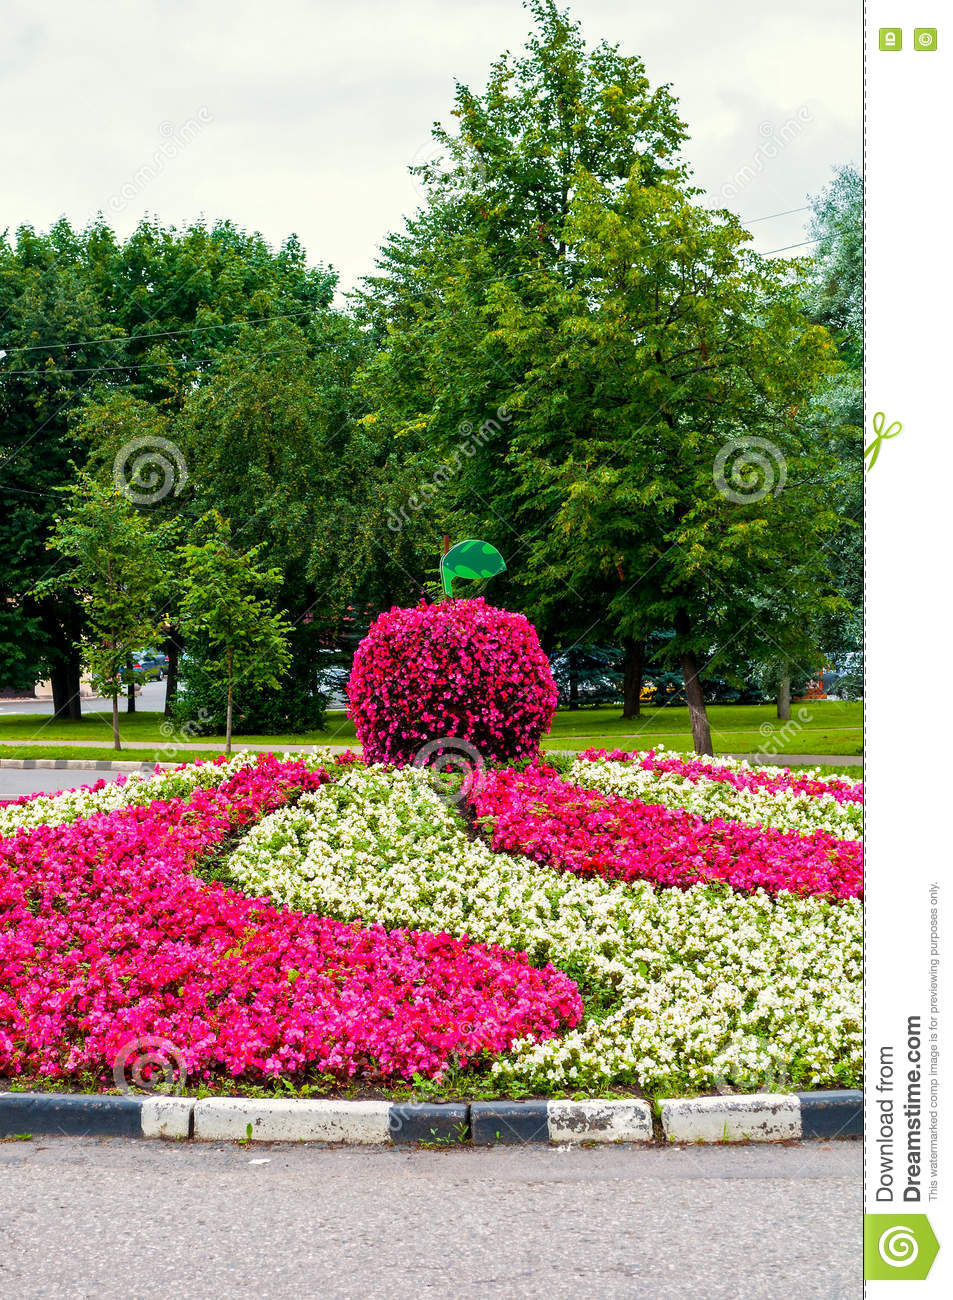 Summer Landscaping summer park landscaping view - flowerbed with landscaping detail